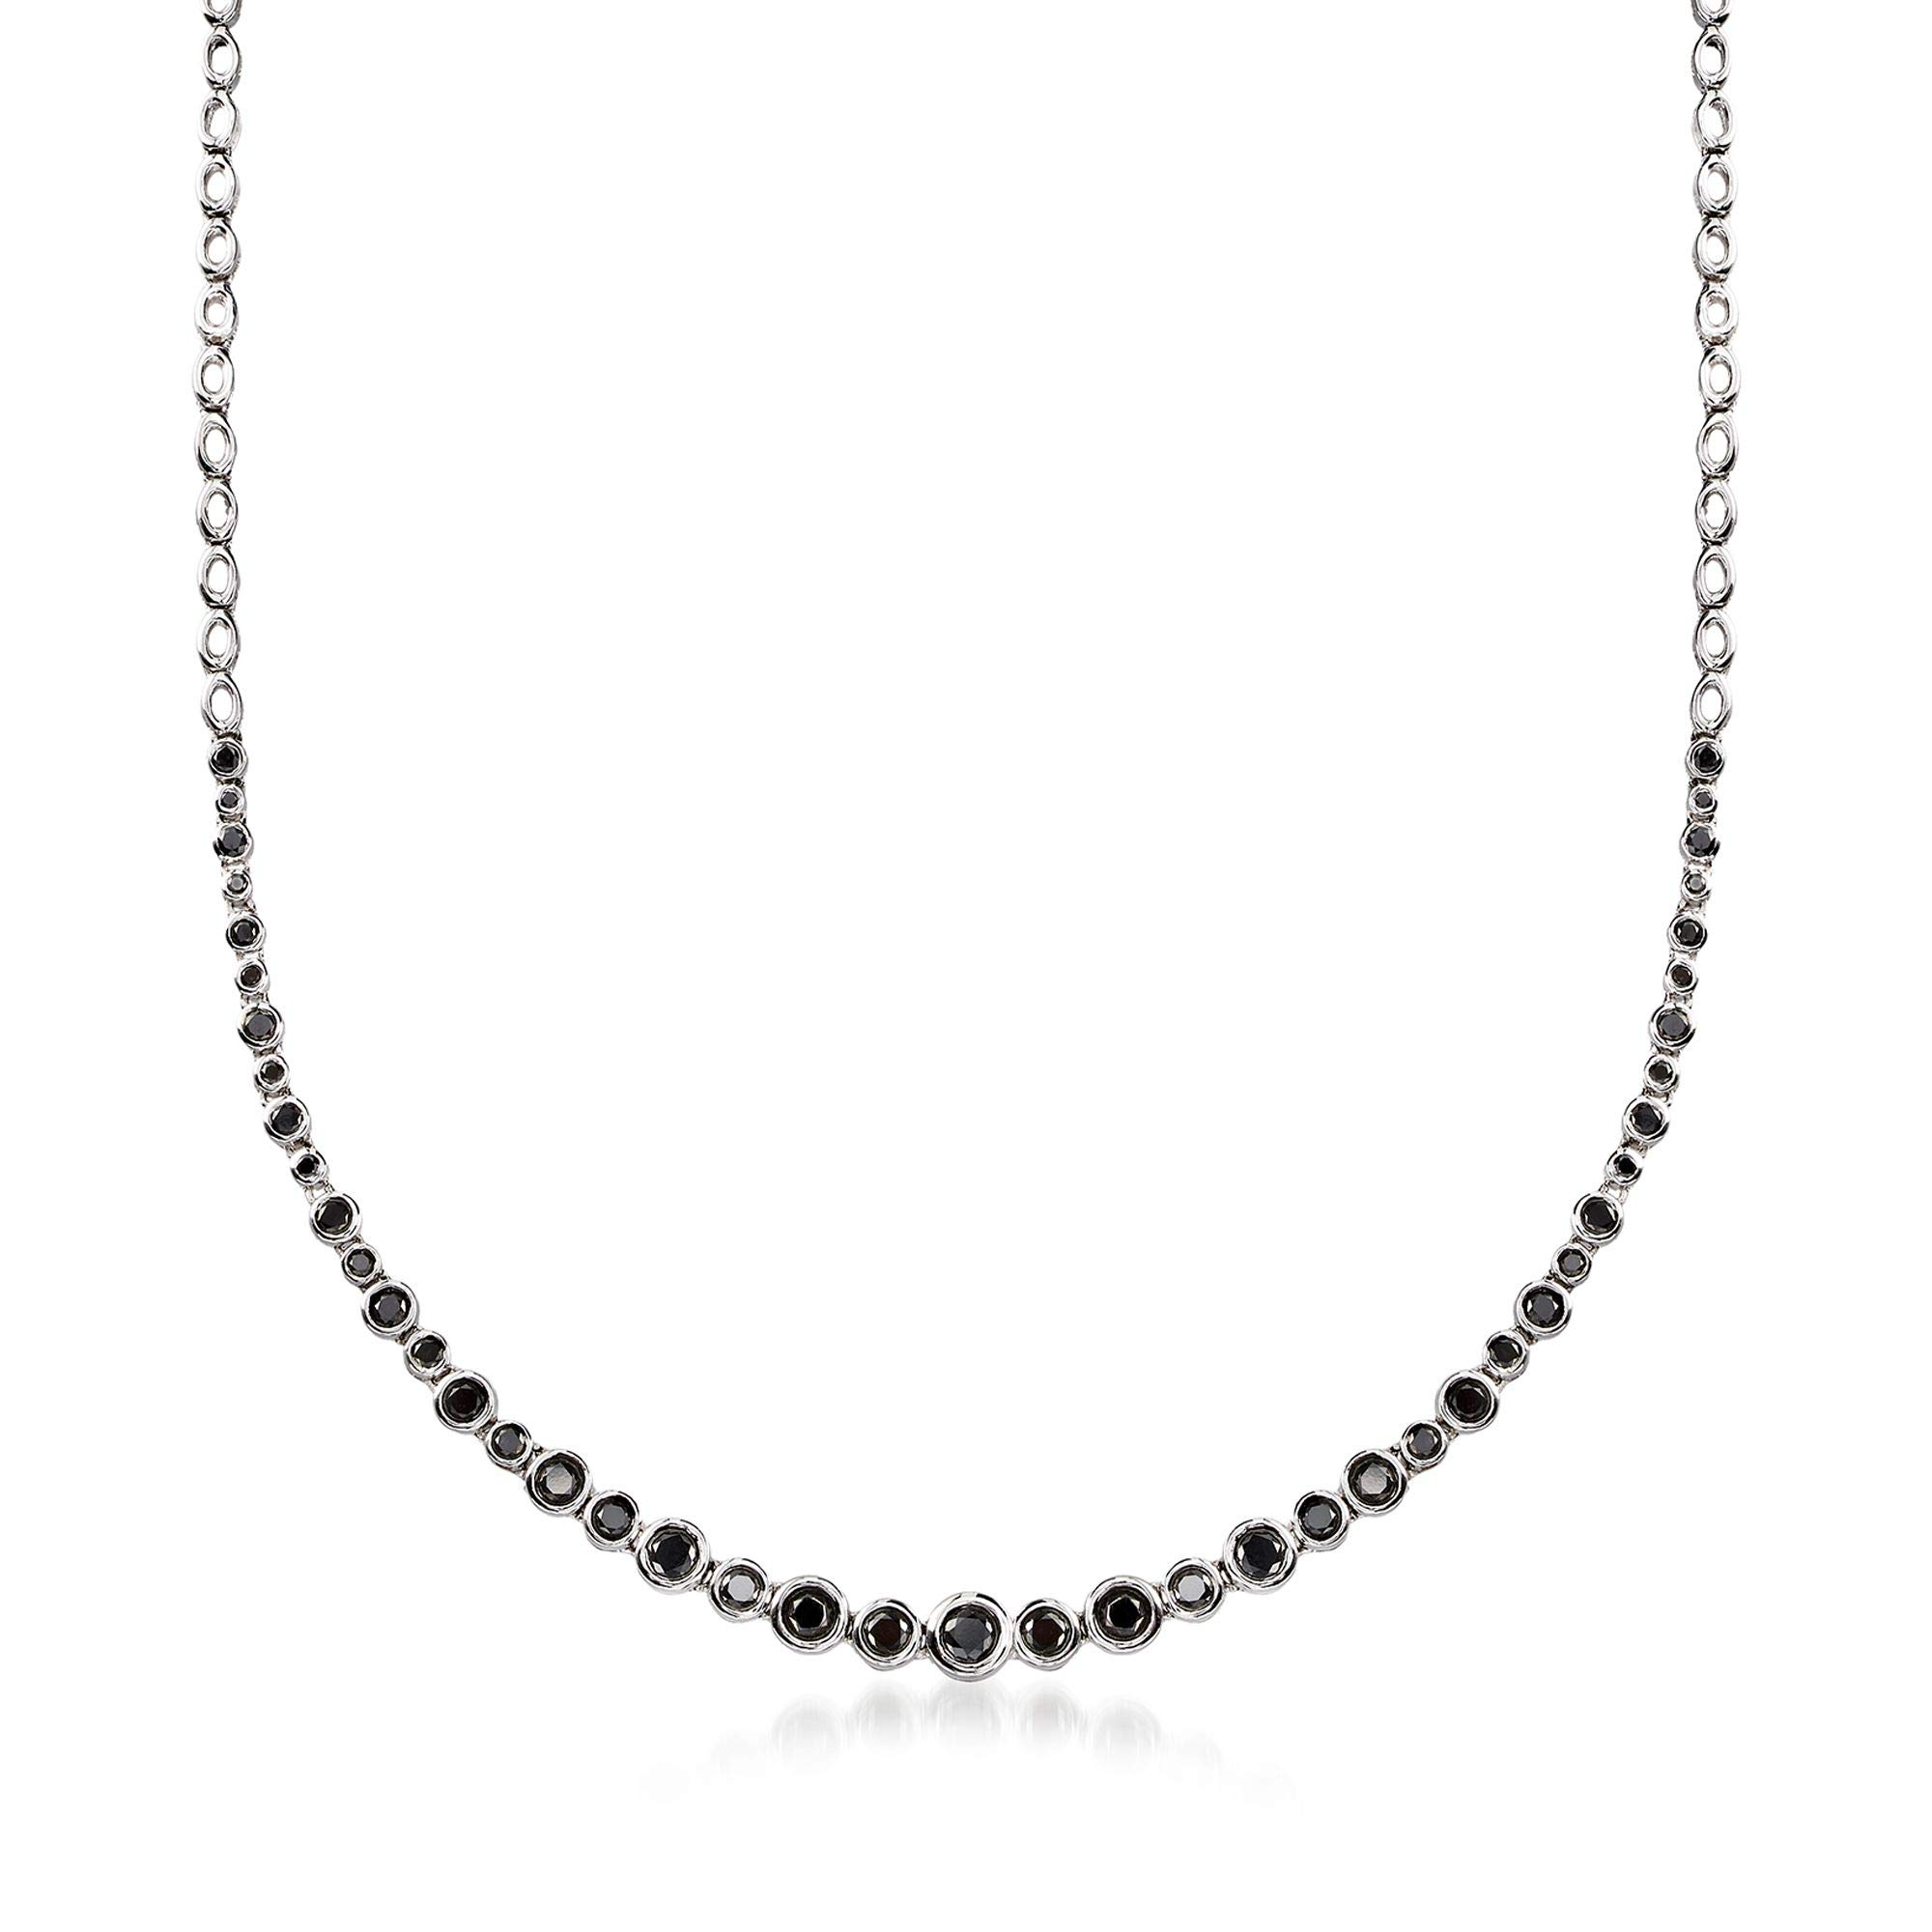 Ross-Simons 2.00 ct. t.w. Bezel-Set Black Diamond Graduated Necklace in Sterling Silver by Ross-Simons